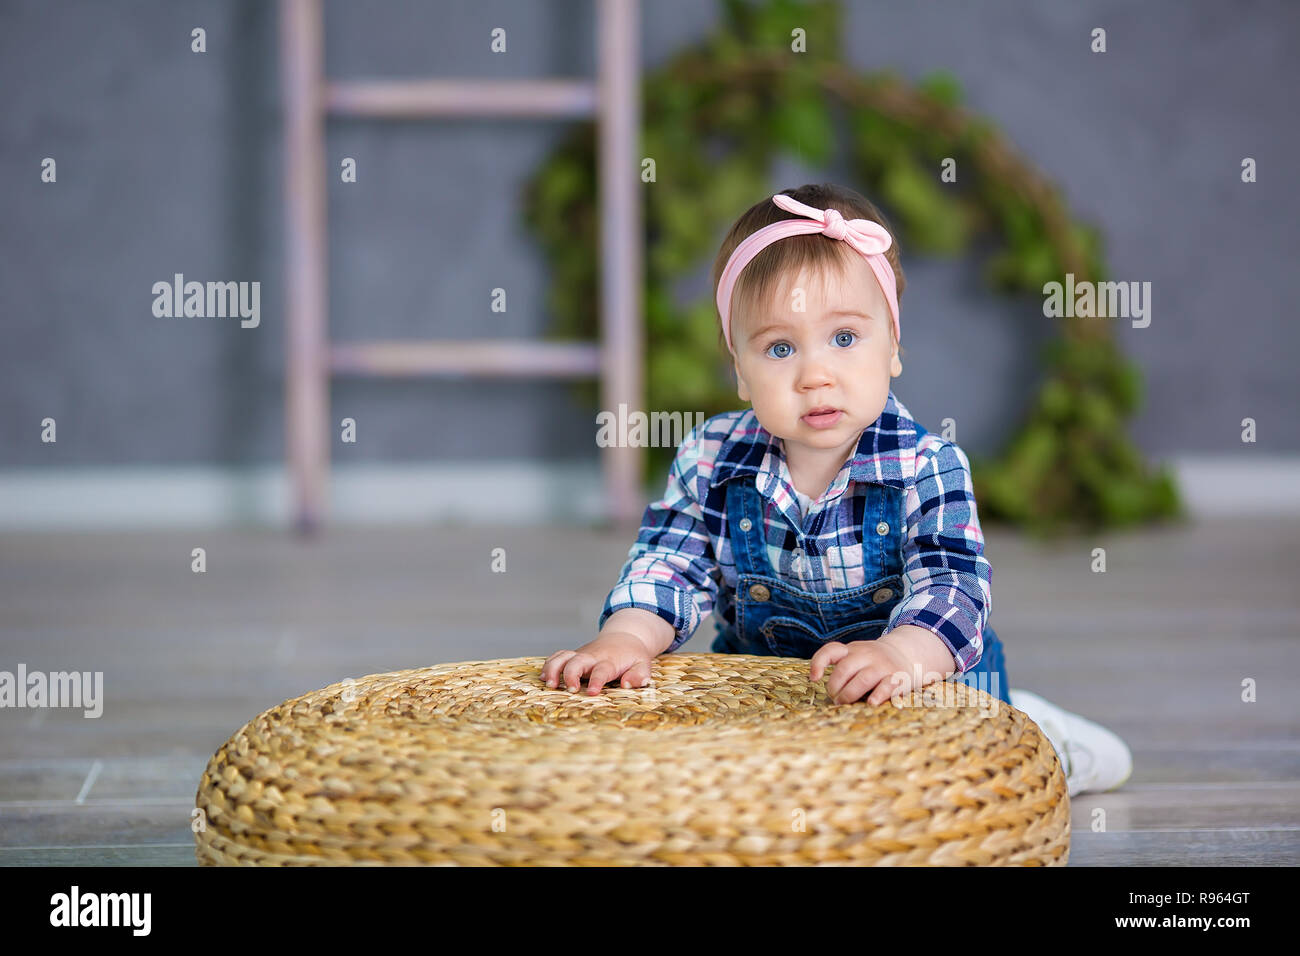 28809af80 Portrait of a cute baby girl on a light background with a wreath of ...